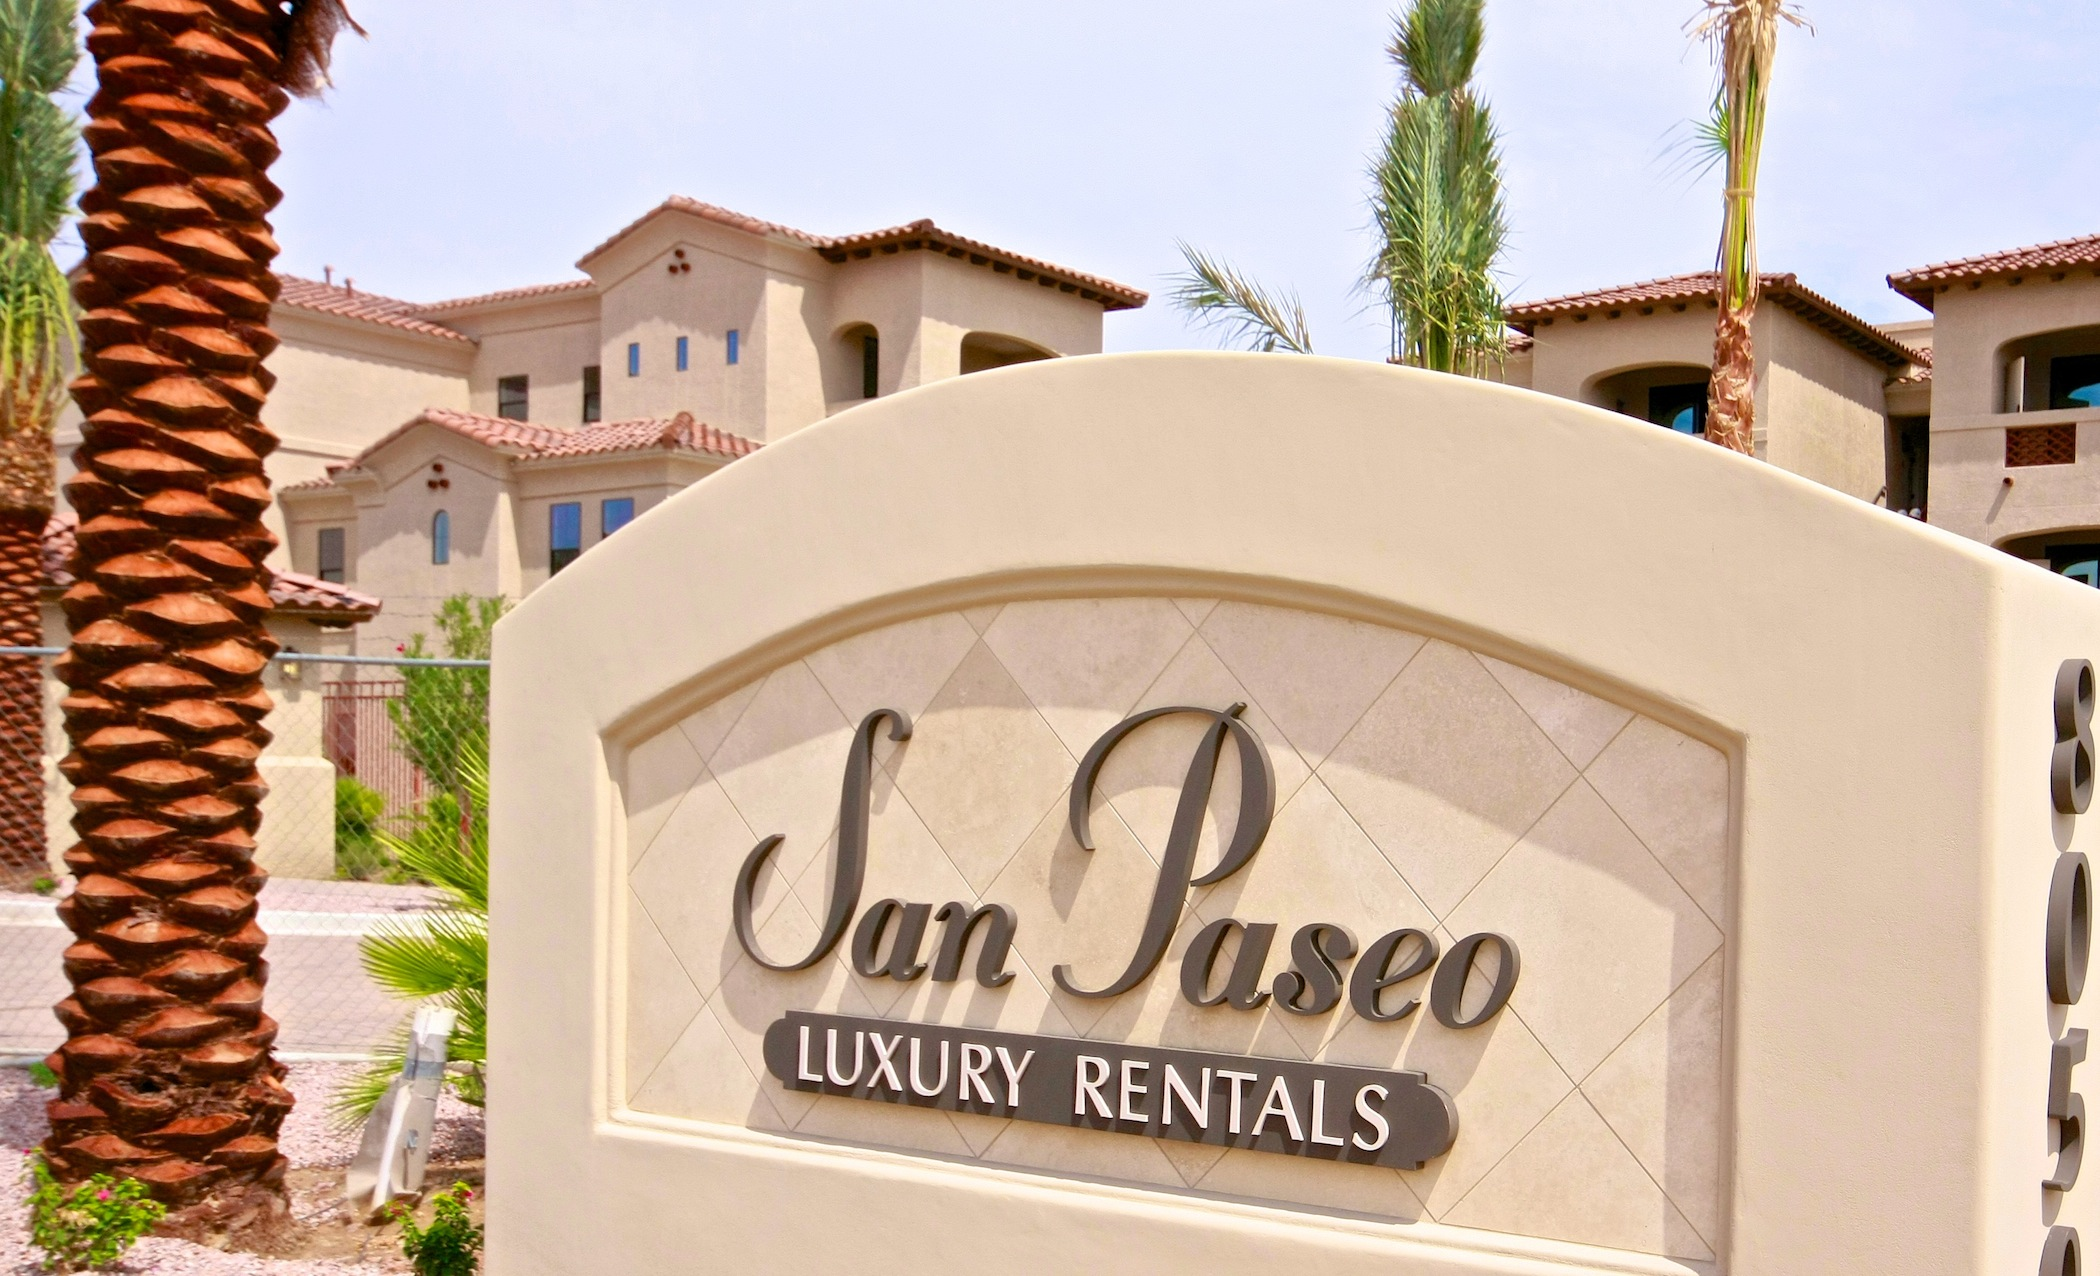 A New Concept From Mark Taylor Residential, San Paseo Is The First  Community From The Luxury Rental Where You Are Right In The Middle Of  World Class Golf ...